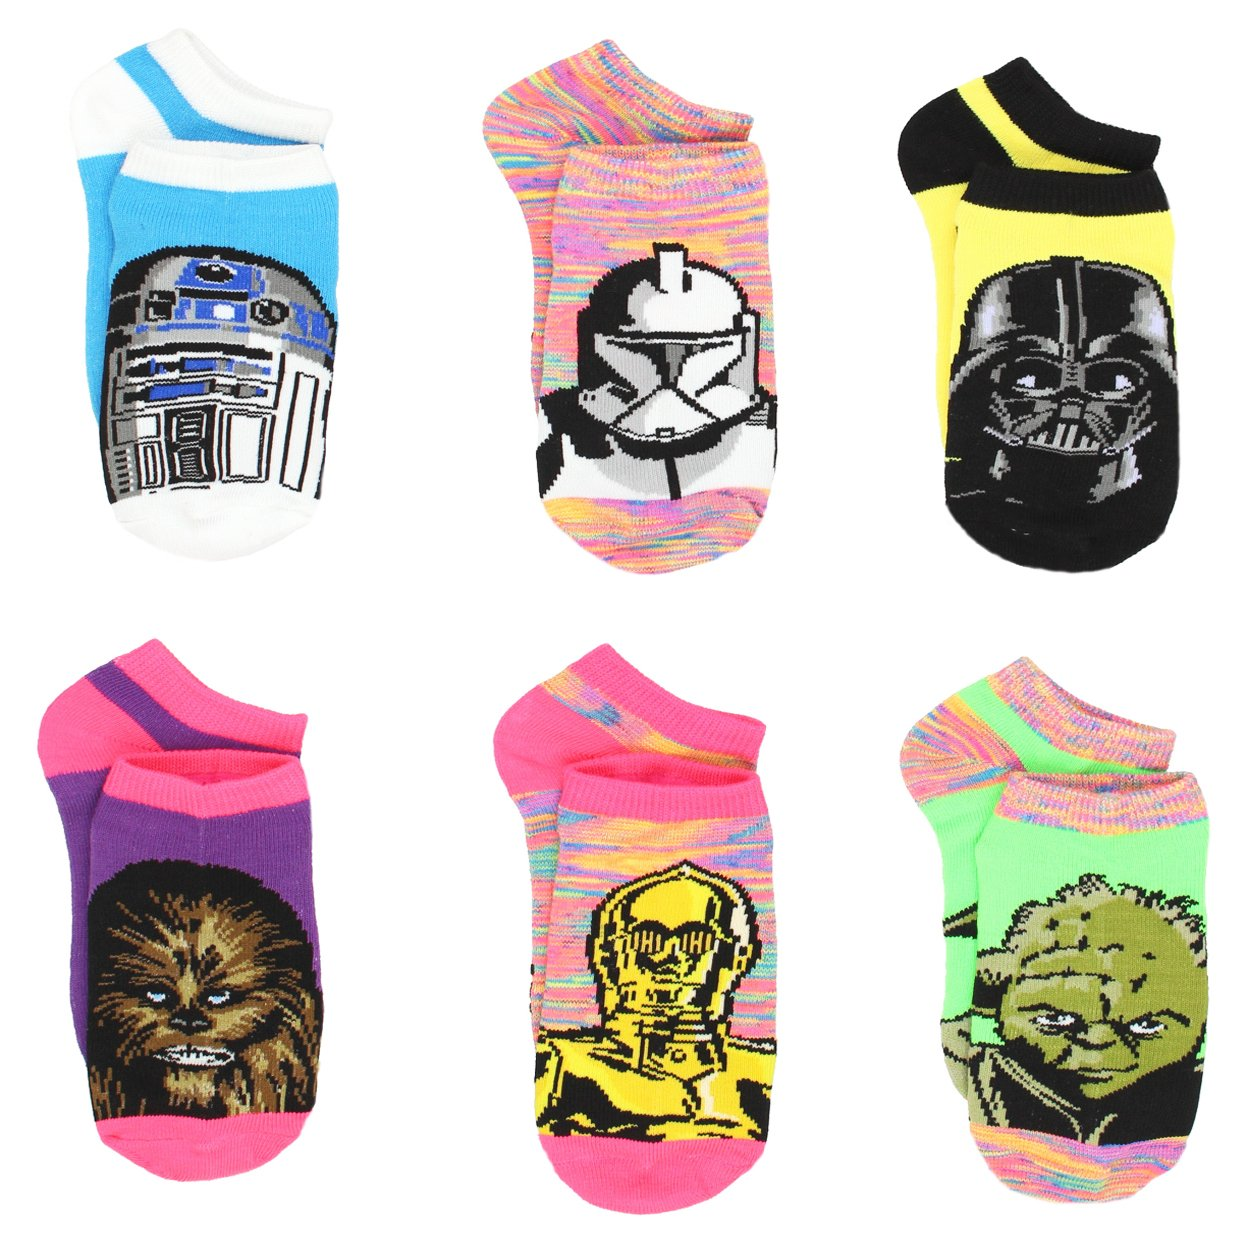 Star Wars Girls Teen Adult Womens 6 pack Socks (9-11 Womens (Shoe: 4-10), Galaxy Neon Heather)